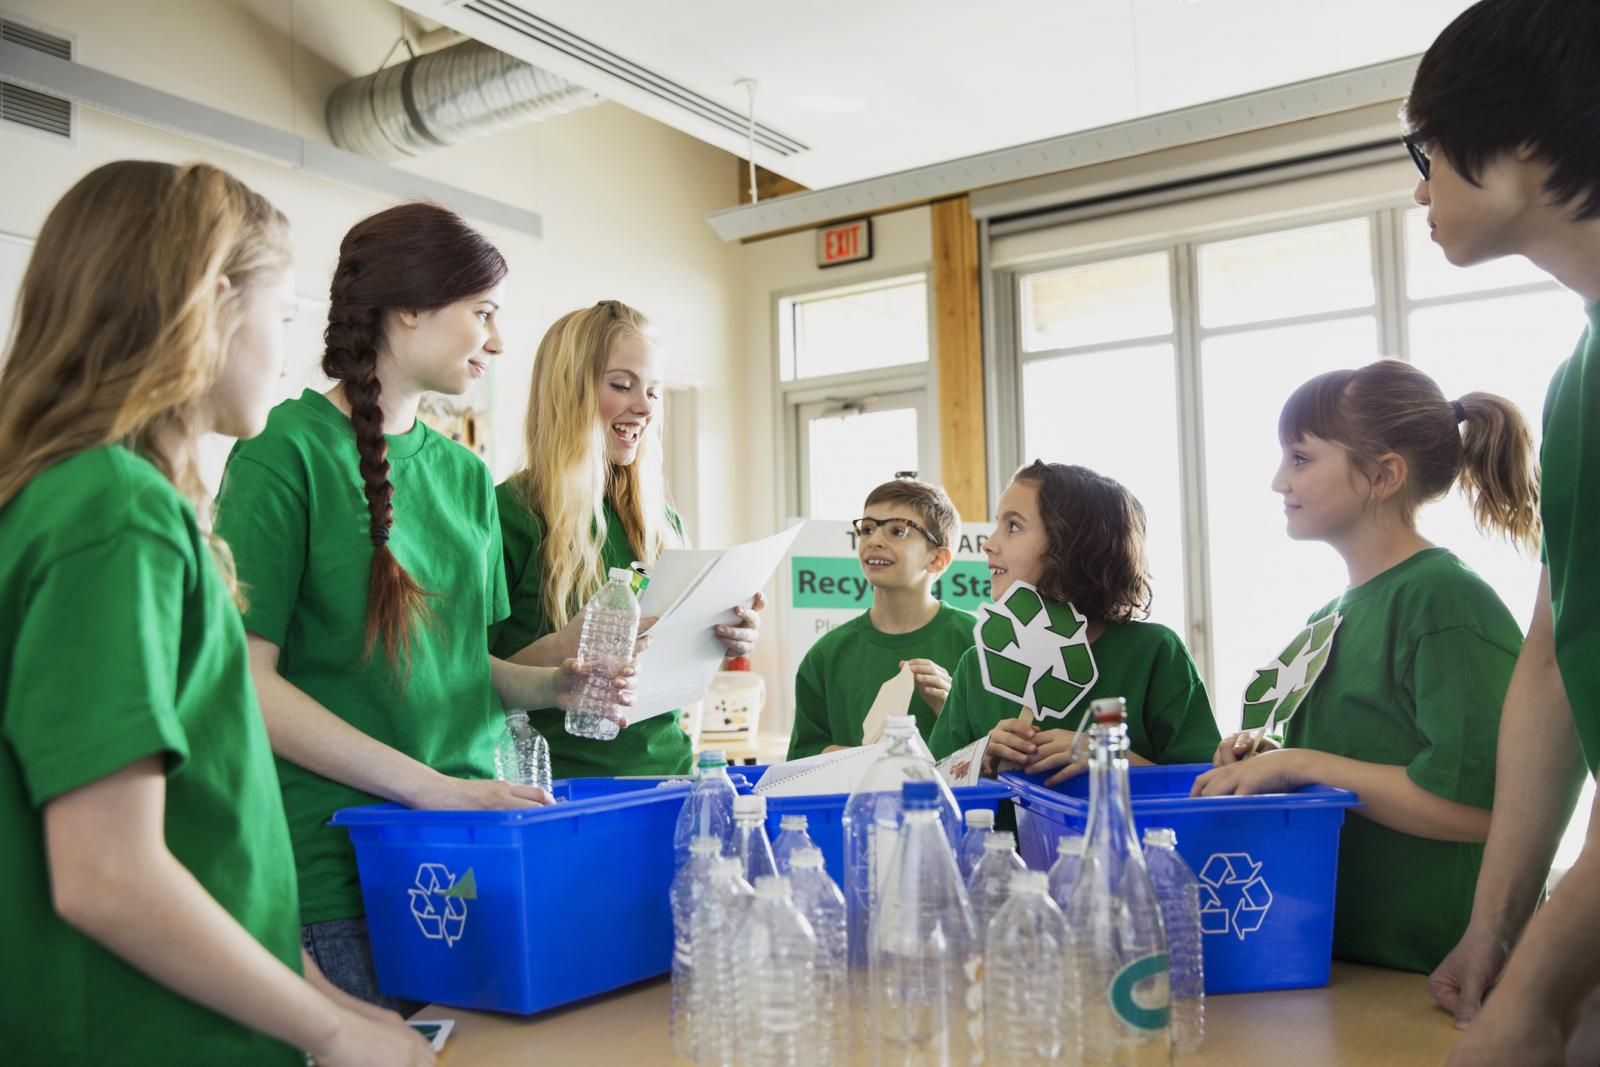 Mentor teaching students to recycle in classroom